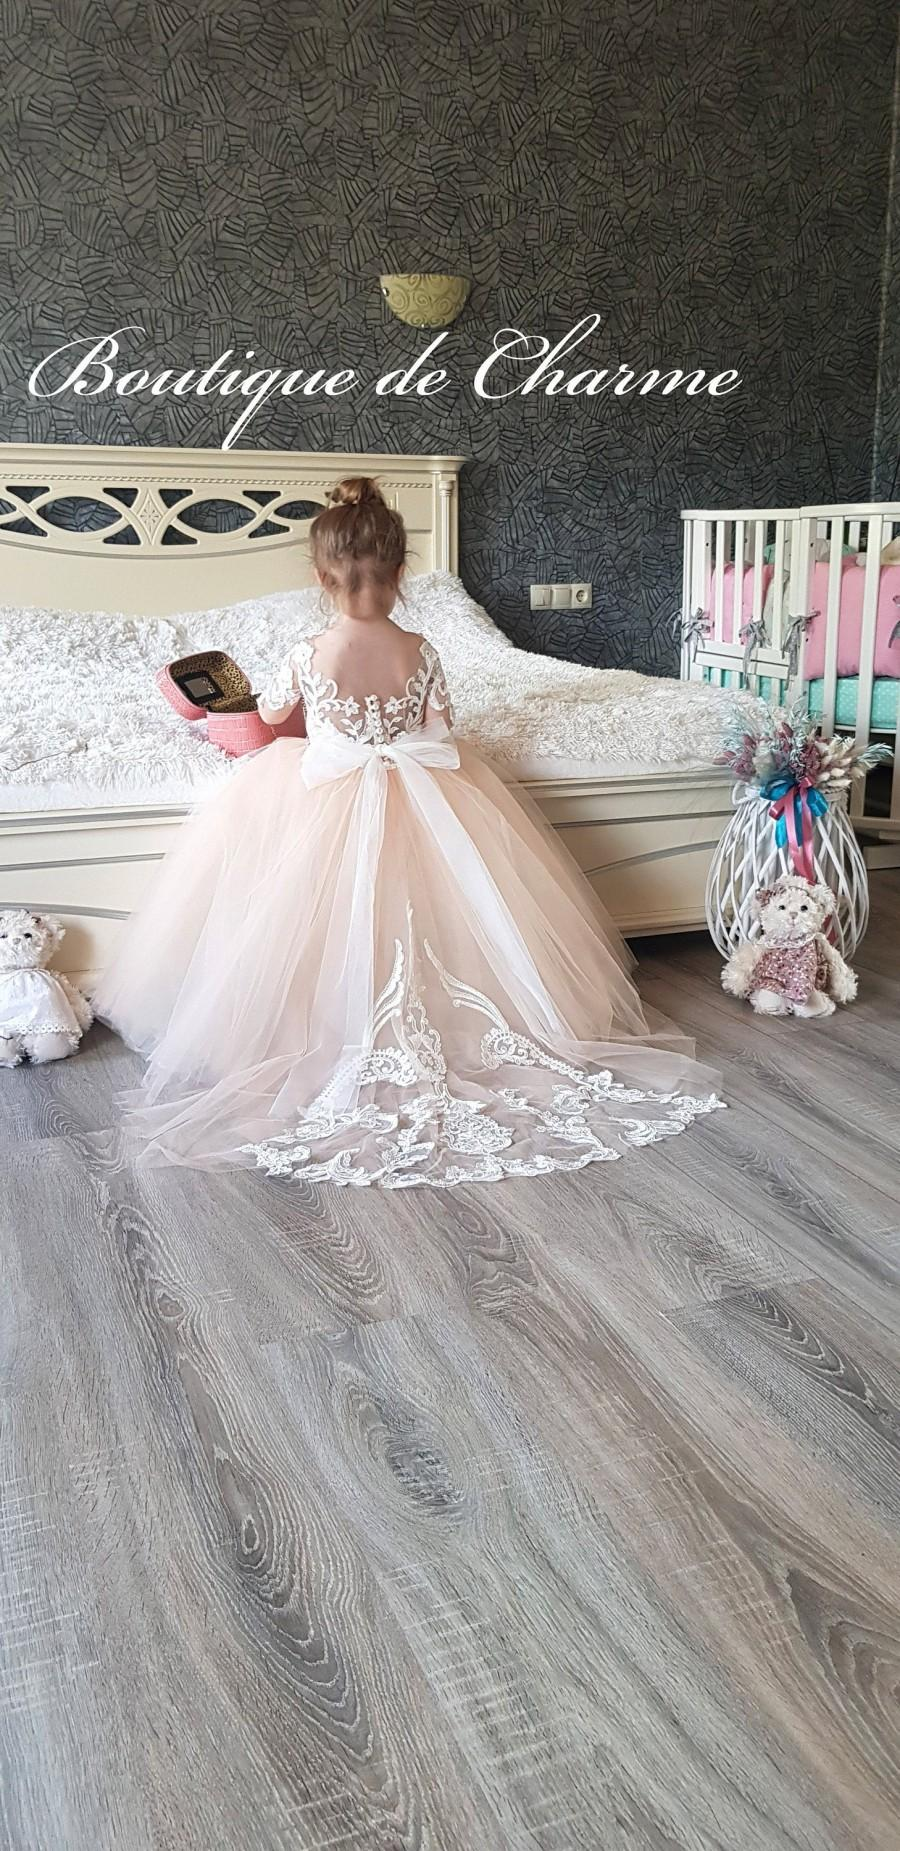 Mariage - Long sleeve flower girl dress, Tutu girl dress, Toddler flower girl dress, Lace dress, White flower girl dress,Flower girl dress,Tulle dress